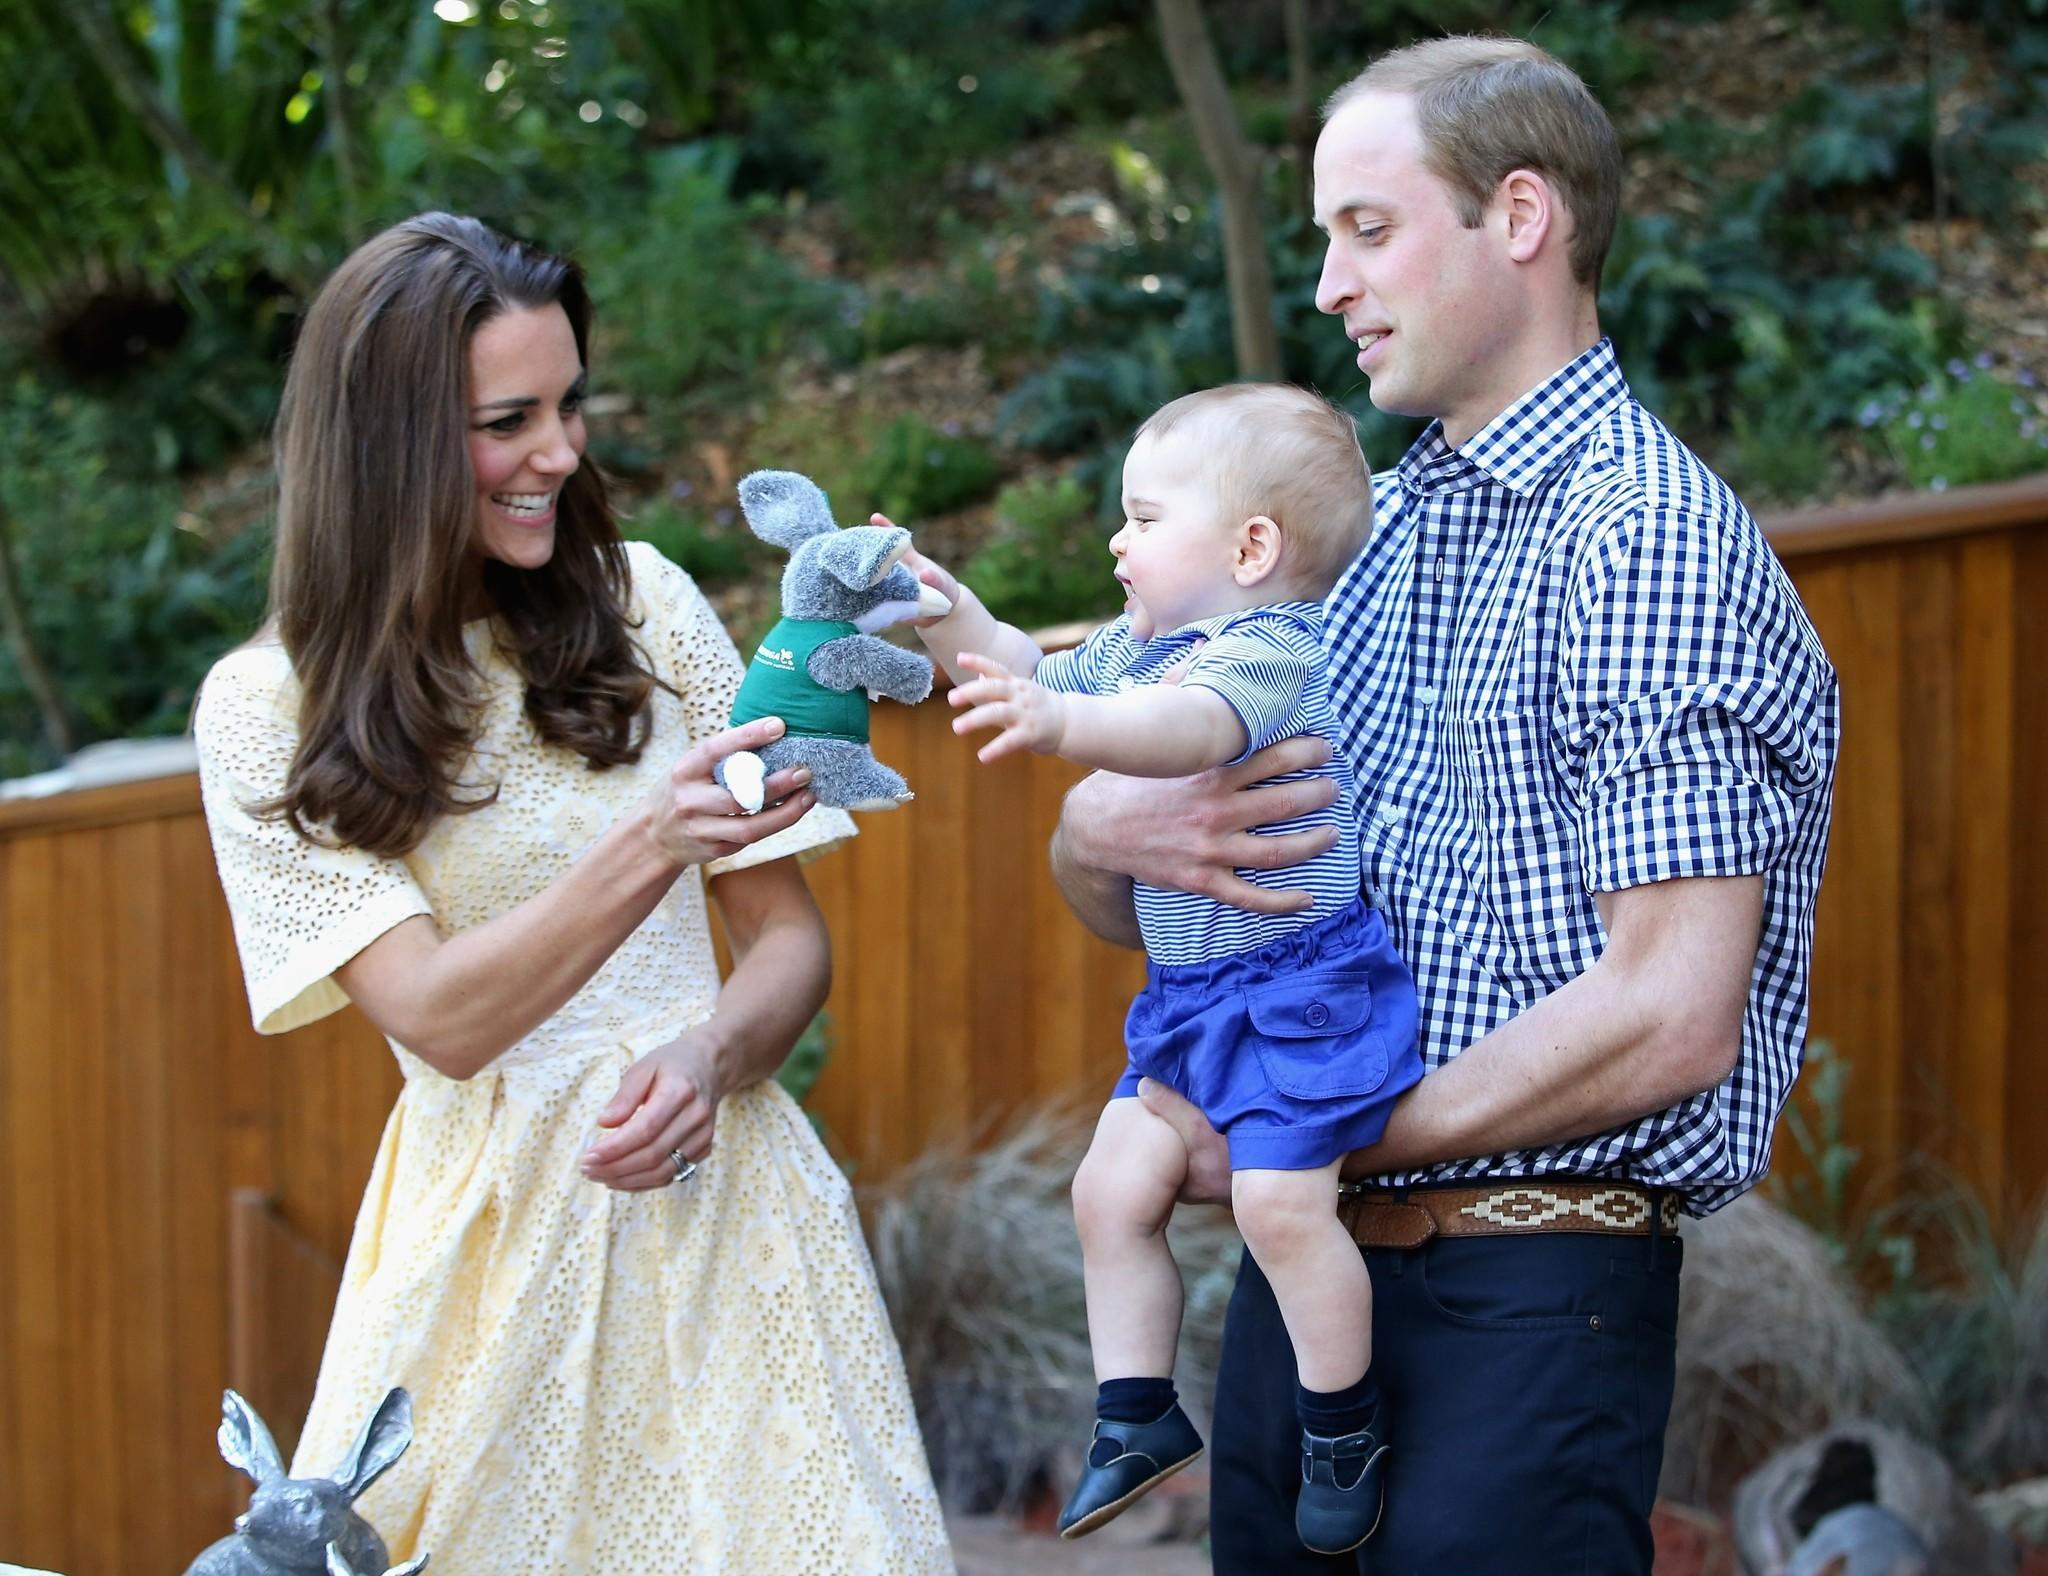 Prince William, Duke of Cambridge, holds Prince George of Cambridge as Catherine, Duchess of Cambridge, gives him a toy bilby during a visit to the Bilby Enclosure at Taronga Zoo in Sydney, Australia.